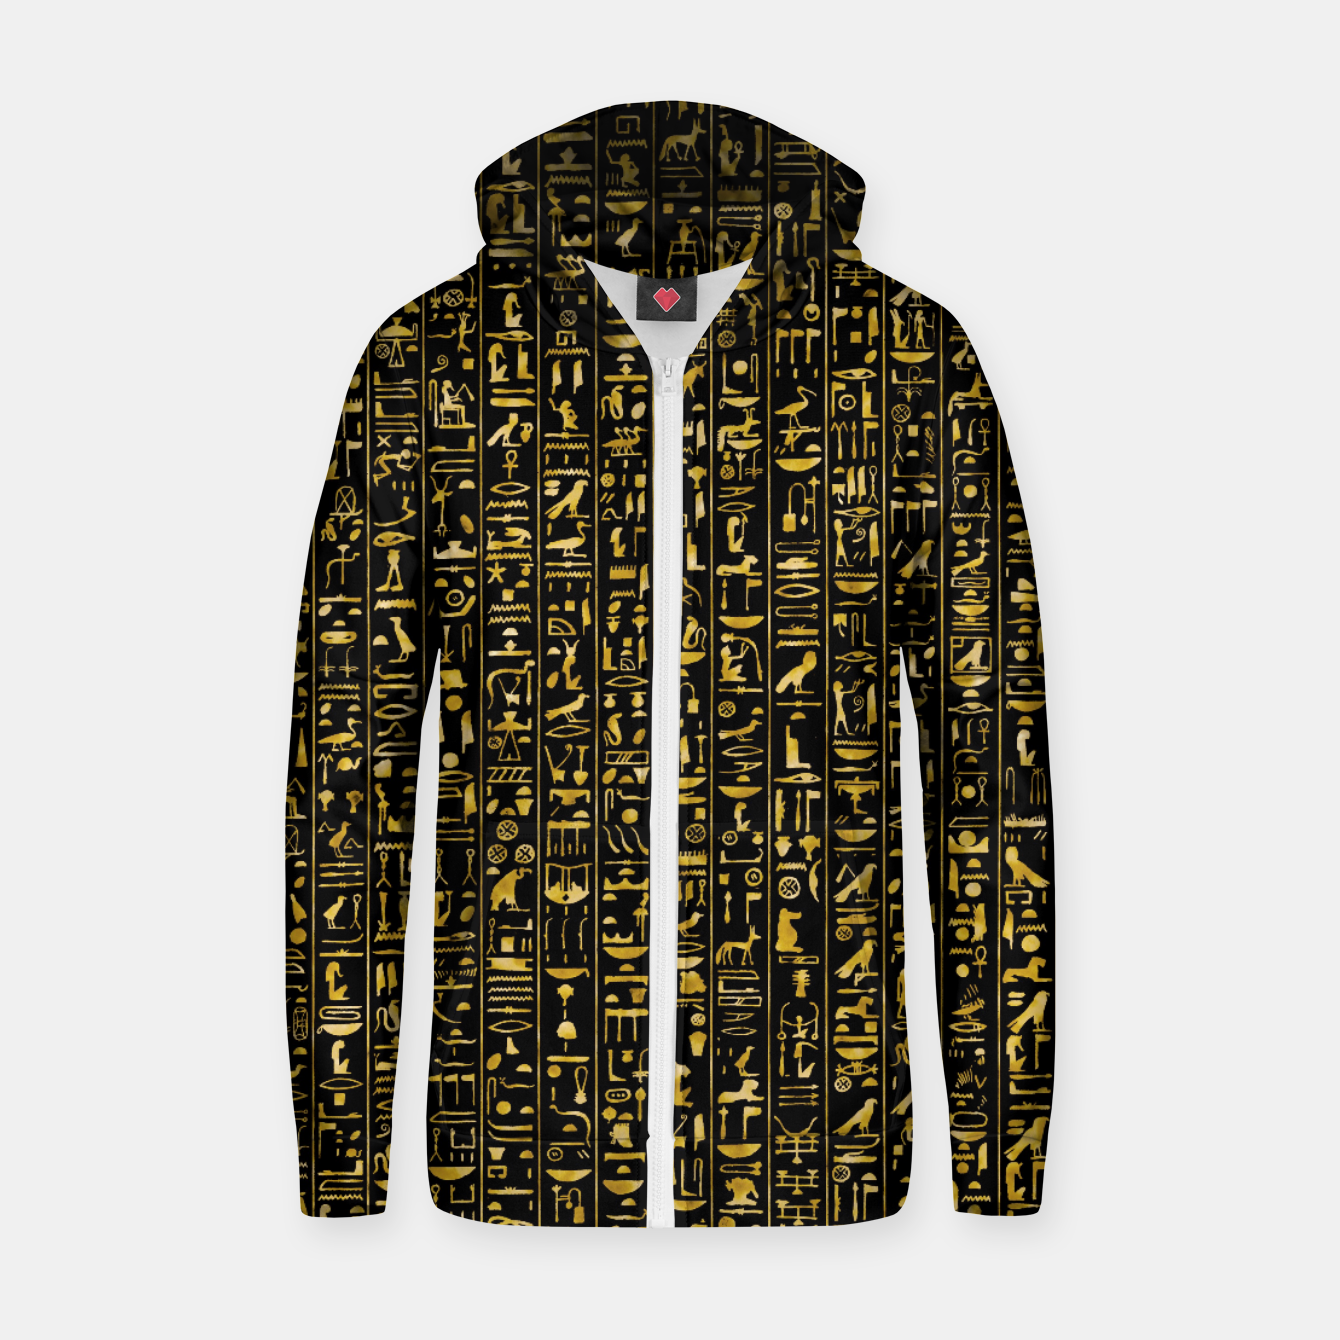 Foto Hieroglyphics GOLD Ancient Egyptian Hieroglyphic Symbols Zip up hoodie - Live Heroes